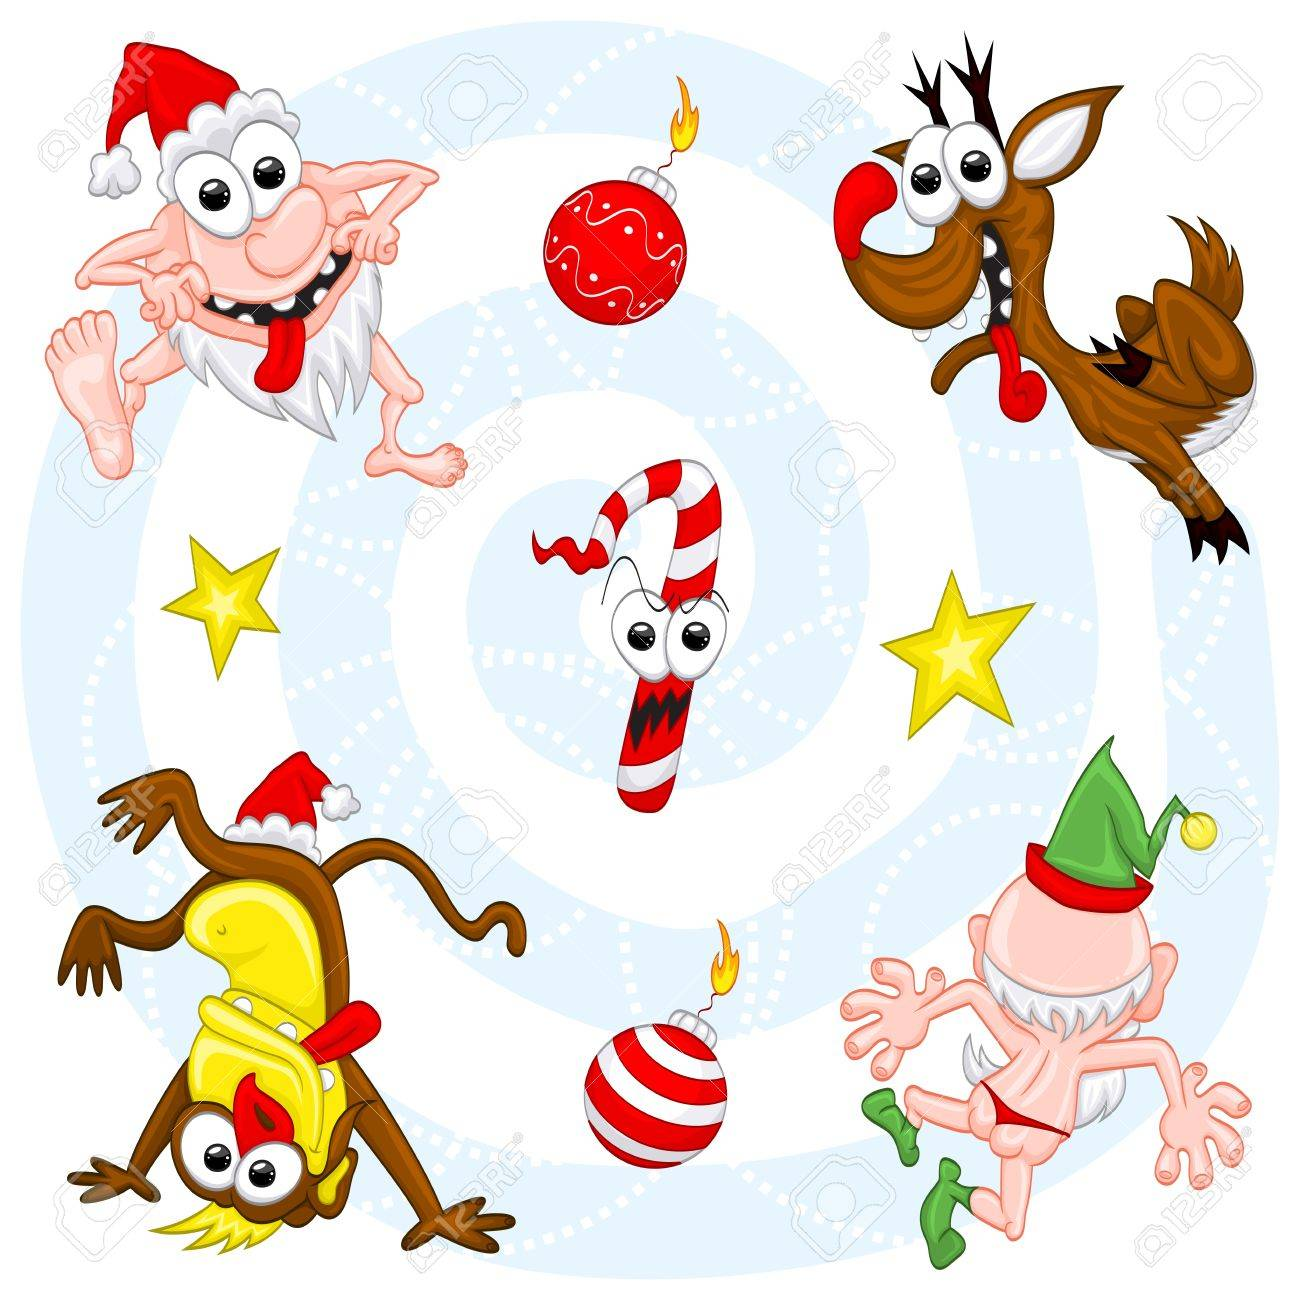 Crazy Christmas Set Royalty Free Cliparts, Vectors, And Stock ...